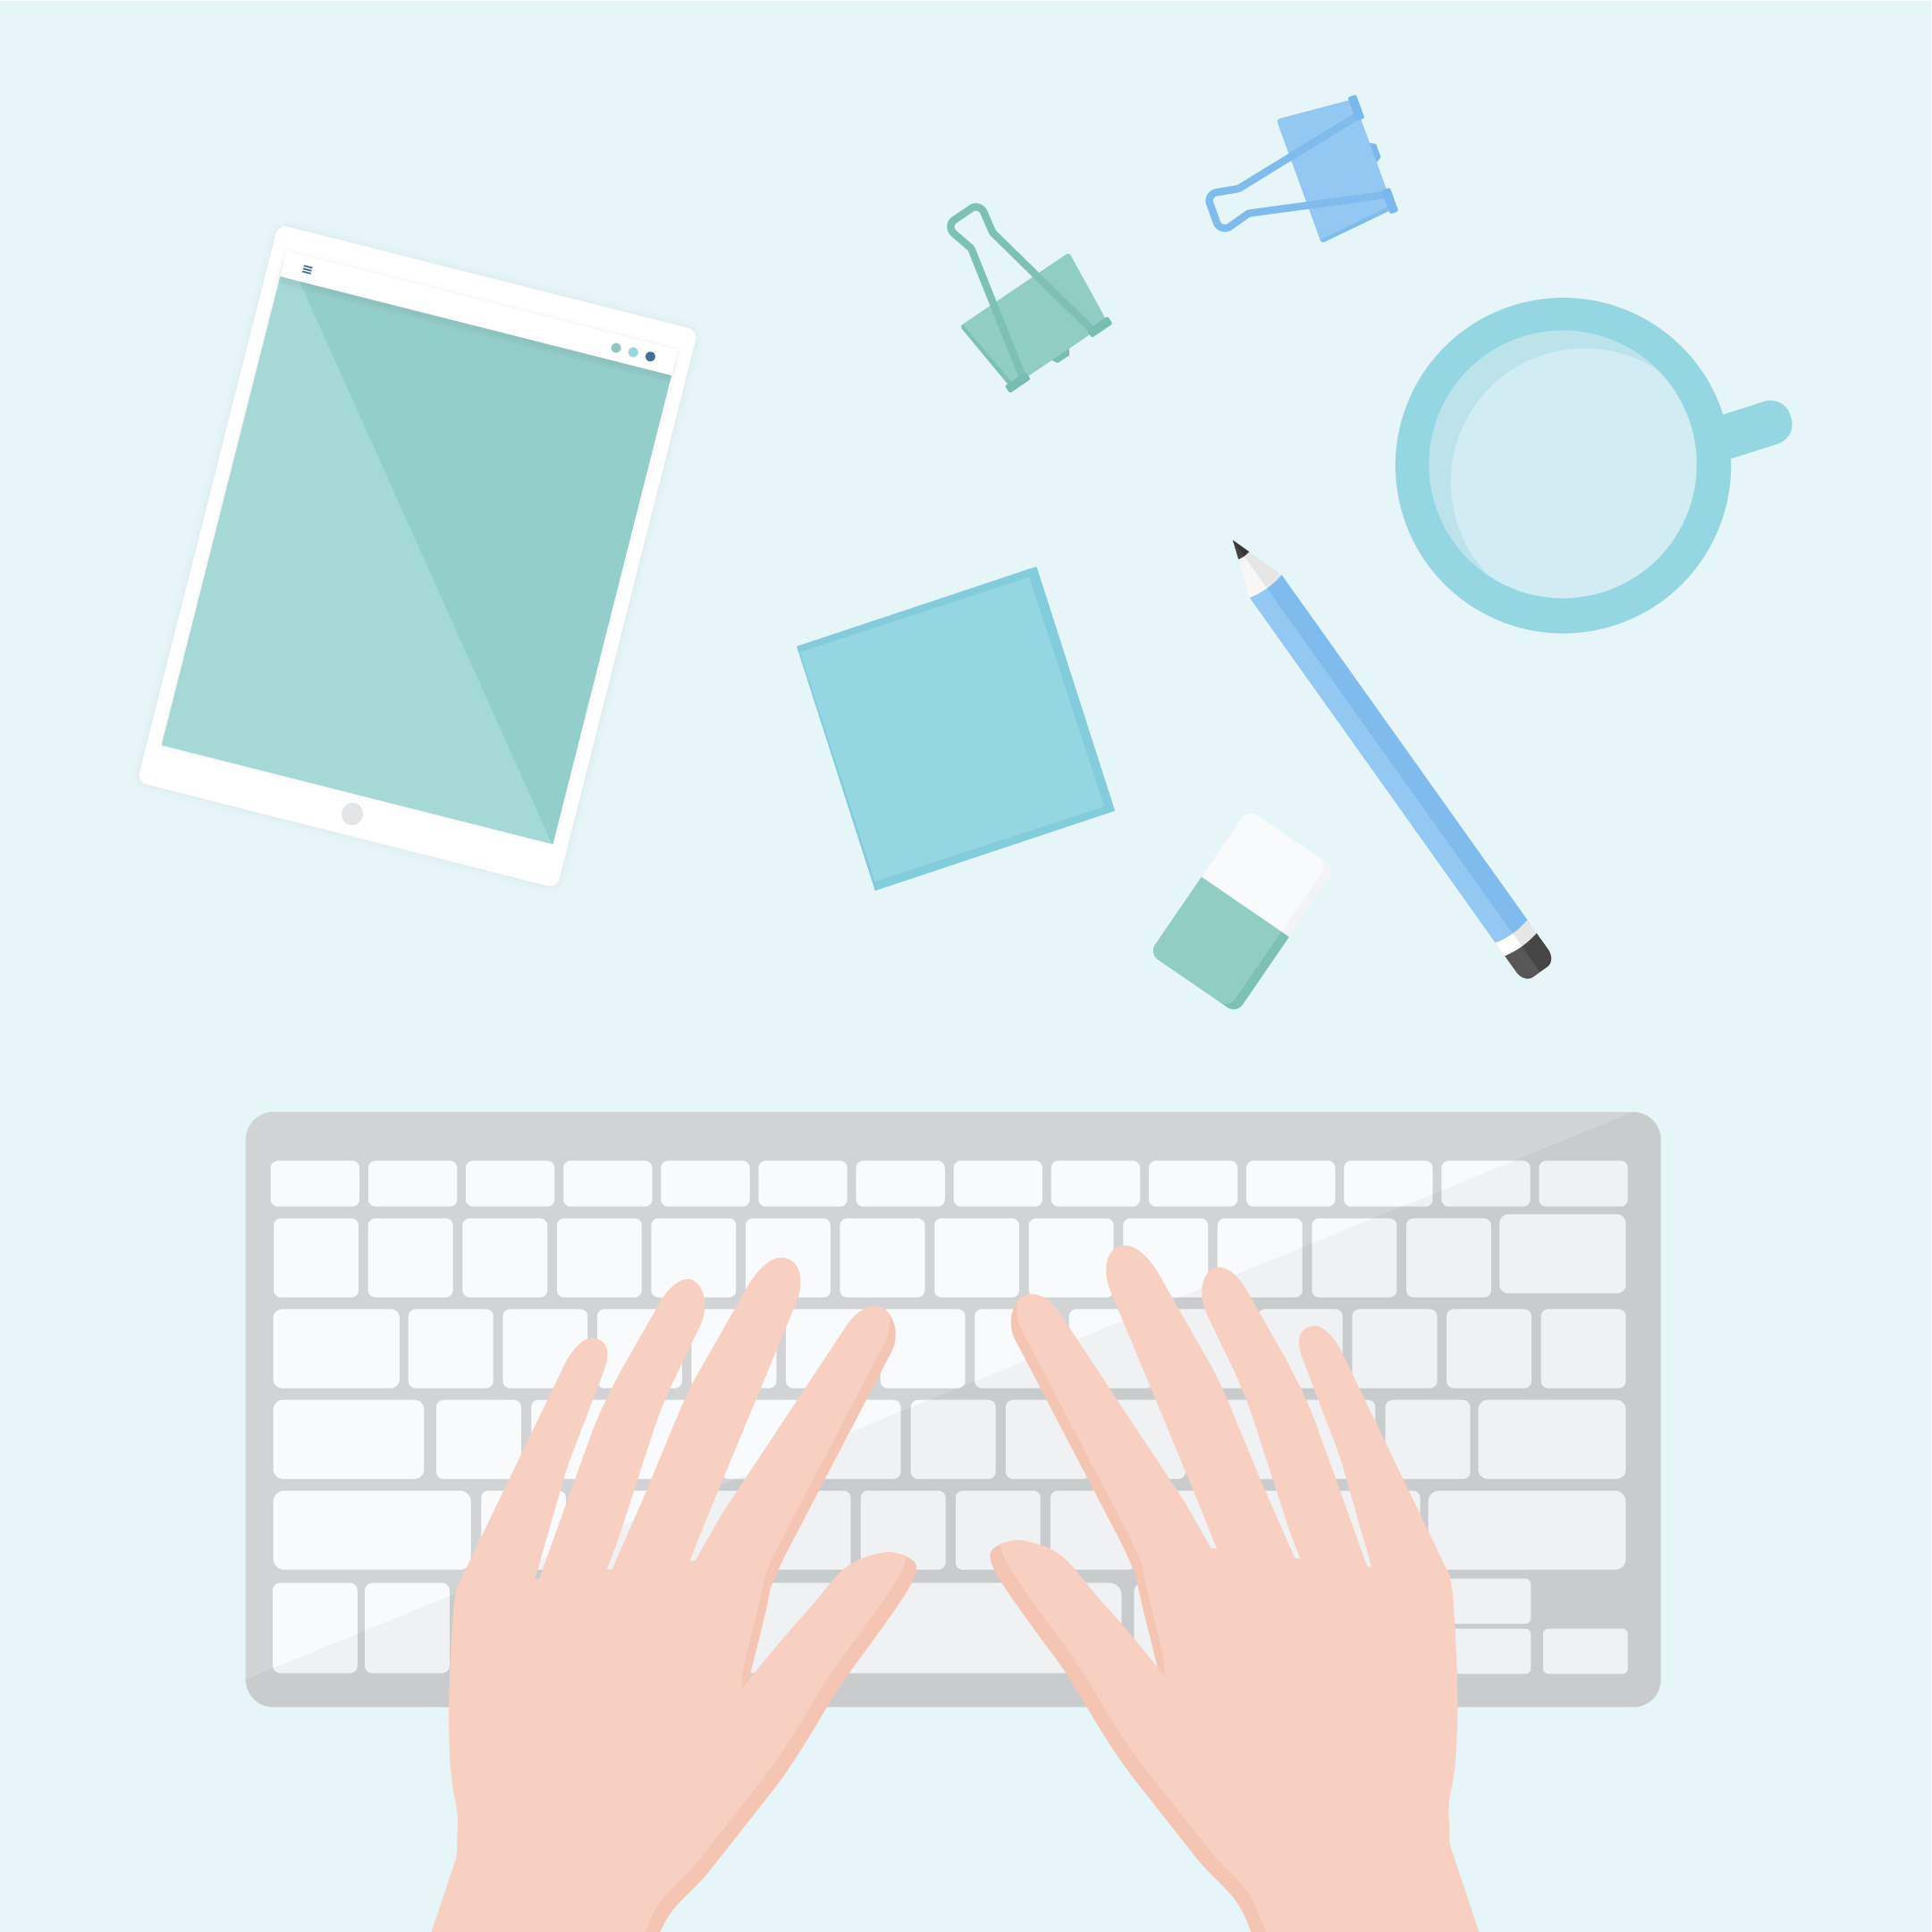 Flat lay, top view vector illustration of hands typing on a wireless keyboard, together with a tablet, a mug with water, binder clips, sticky notes, pencil & eraser in flat design style